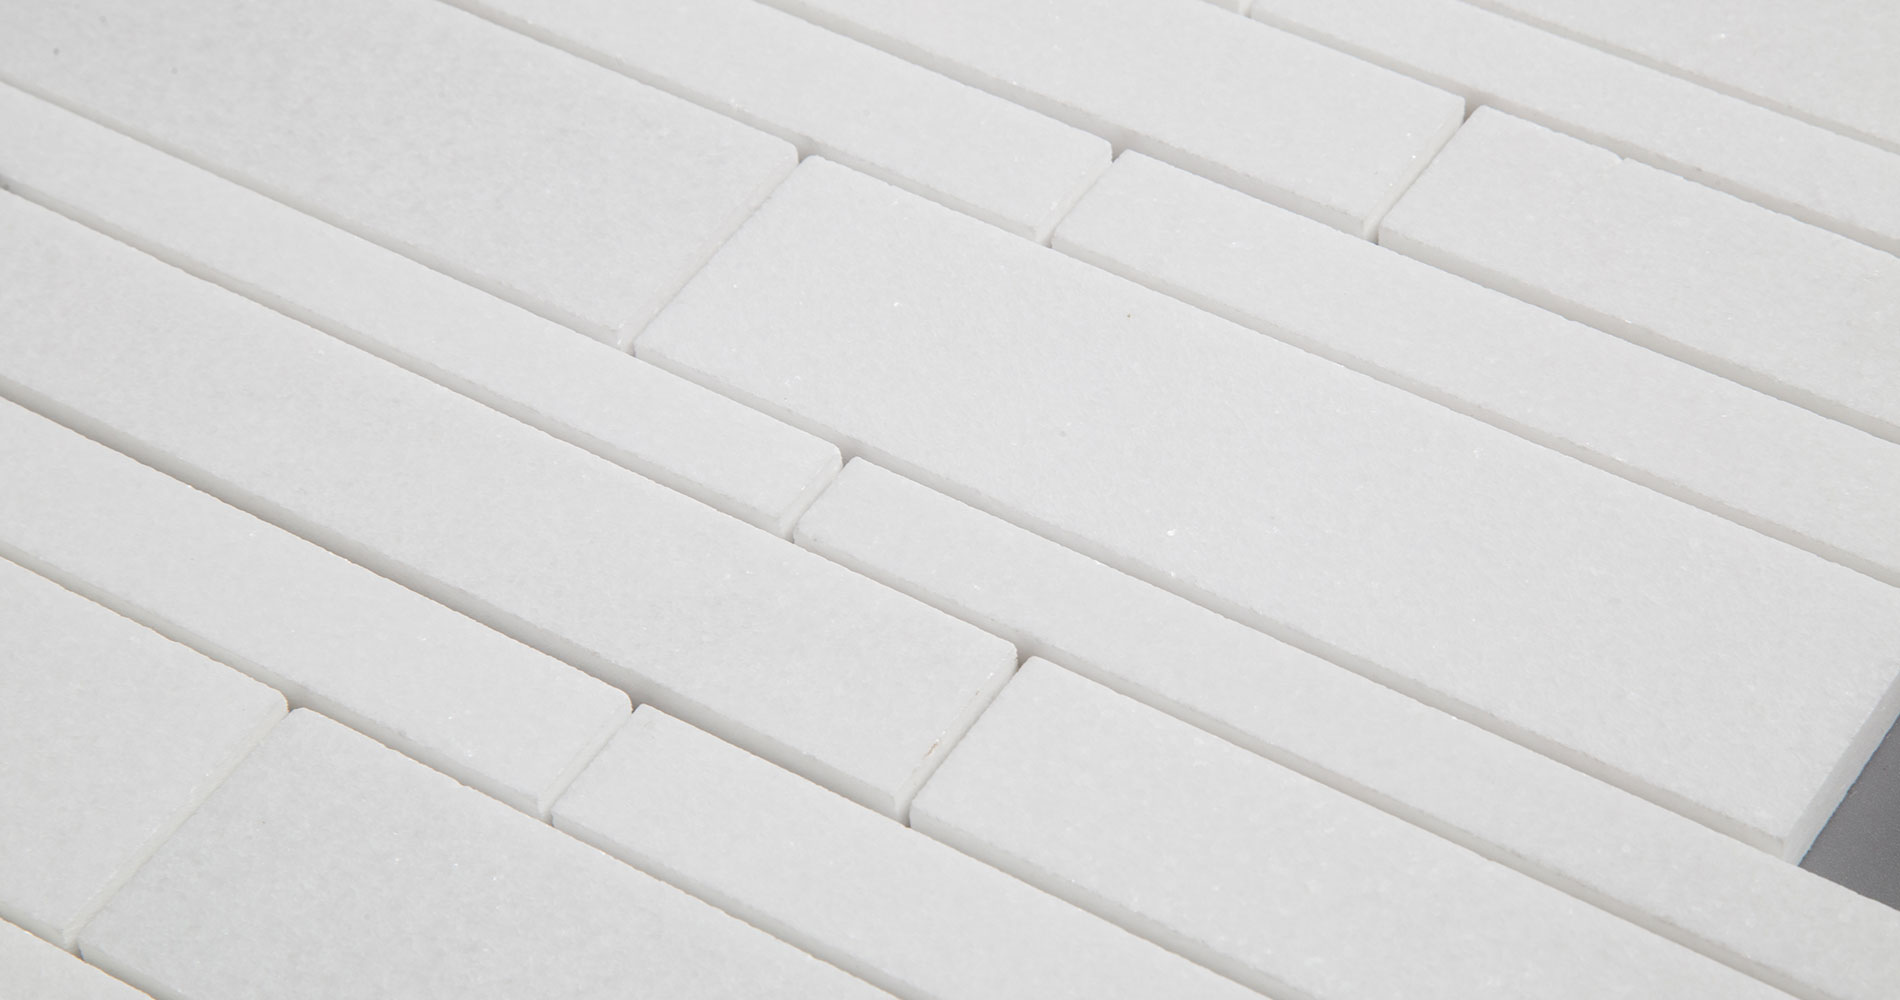 centurymosaic-Interlocking-Strip-Marble-Mosaic-Tile-6